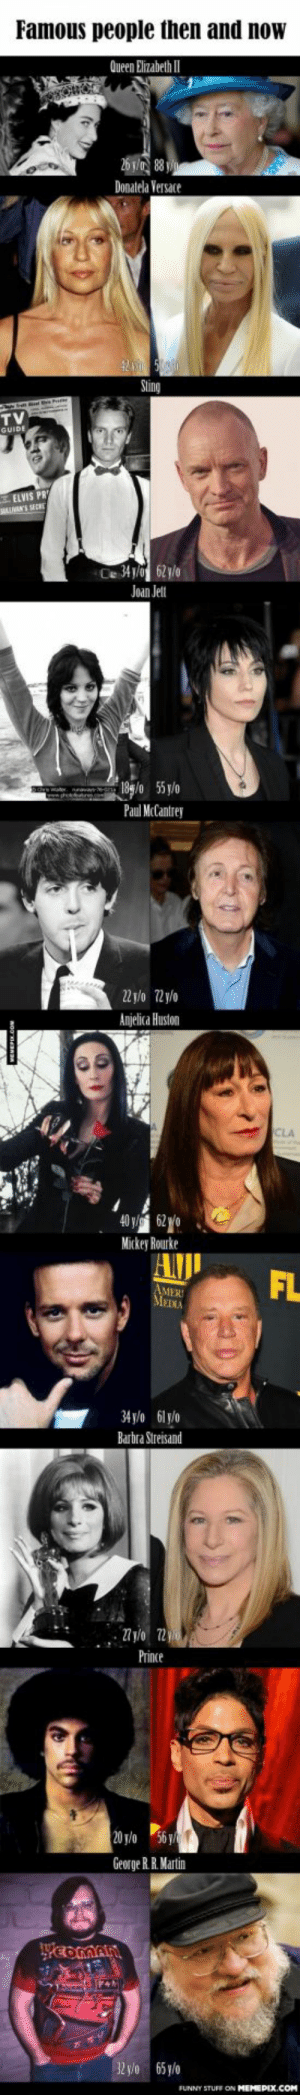 Famous people then and now (2014)omg-humor.tumblr.com: Famous people then and now  Queen Elizabeth I  26 y/ 88  Donatela Versace  Sting  TV  . ELVIS PRY  LANS SERE  Ce 341/0 62 y/o  Joan Jet  189/0 5 /o  Paul McCantrey  22 y/o 72y/o  Anjelica Huston  CLA  40 v 62 yo  Mickey Rourke  AJI  FL  MEIXA  34 y/o 61 y/o  Barbra Streisand  Prince  20 y/o  George R. R. Martin  32 yo 65 y/o  FUNNY STU  ON MEMEPIX.COM Famous people then and now (2014)omg-humor.tumblr.com